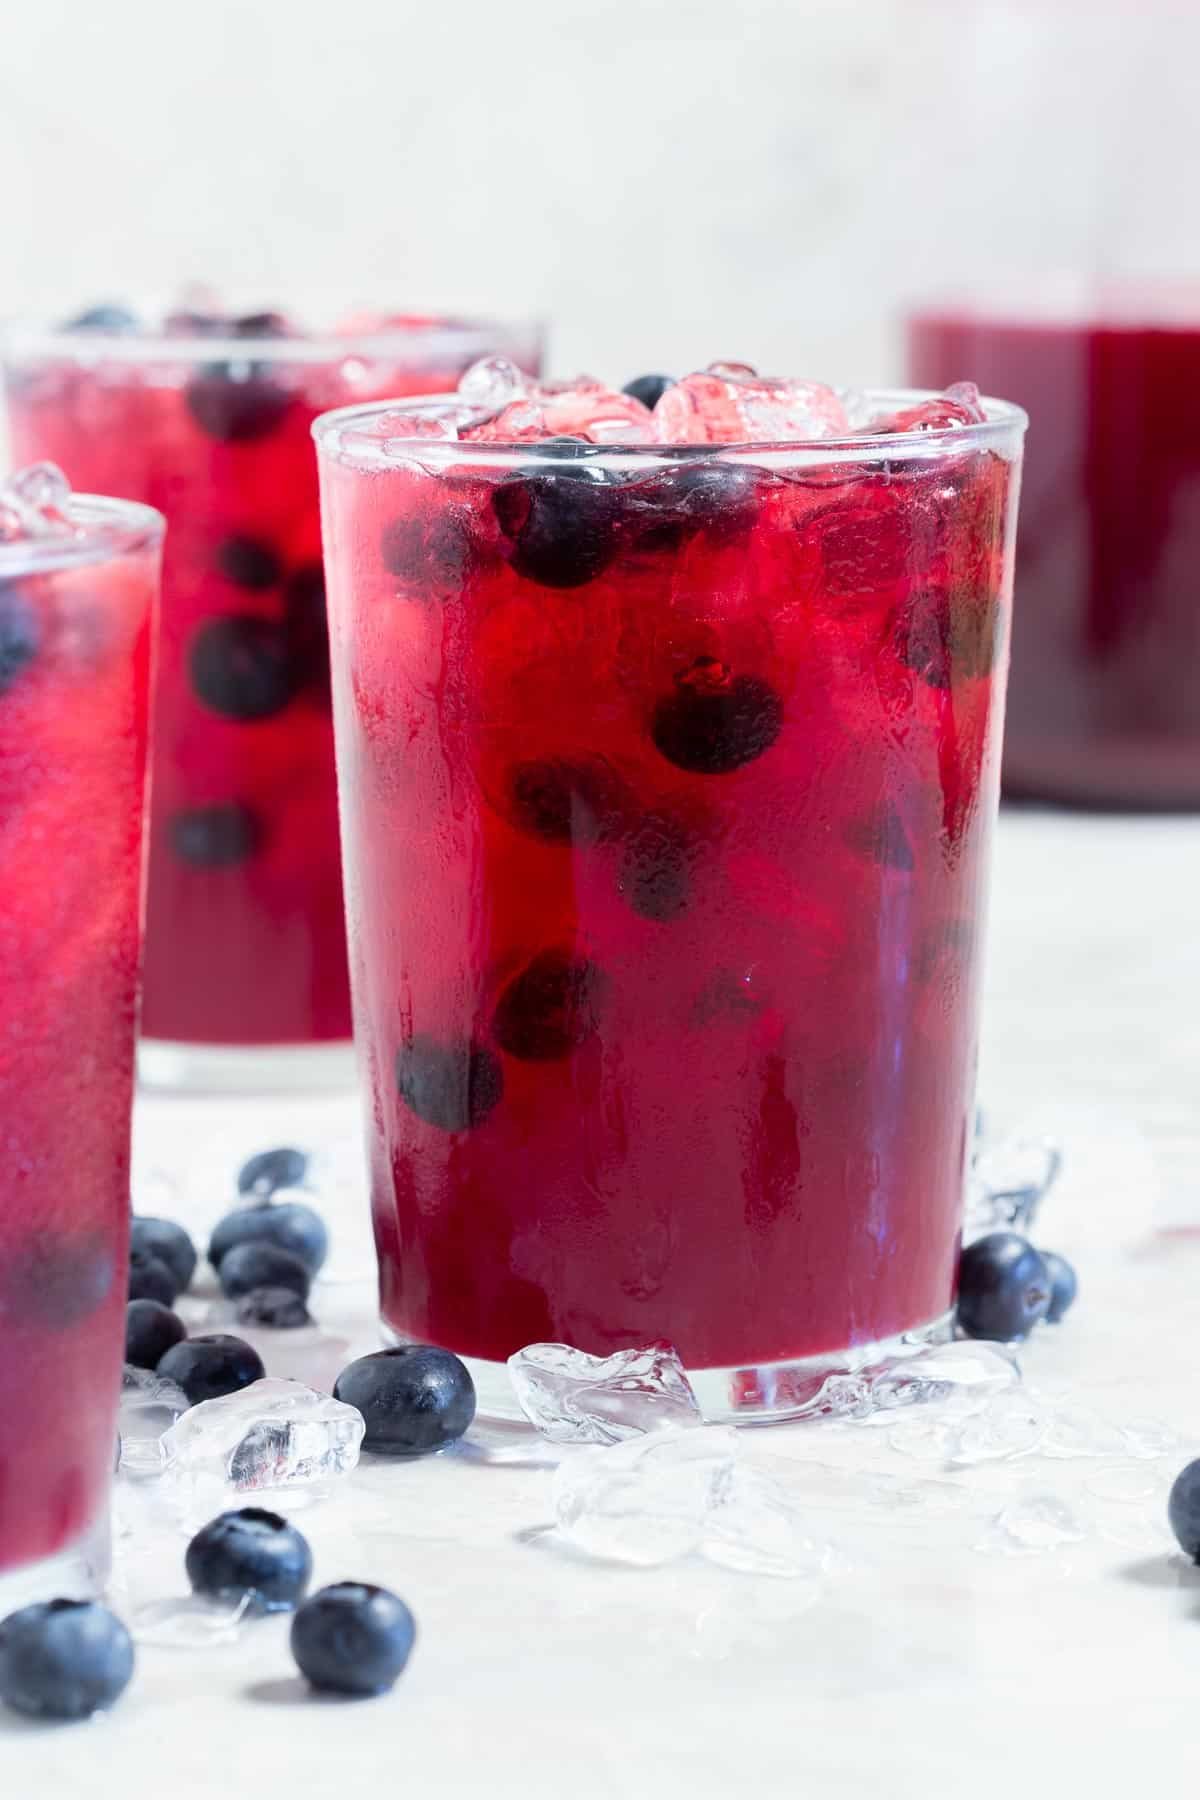 Close up of a glass of dark red lemonade with fresh blueberries and ice